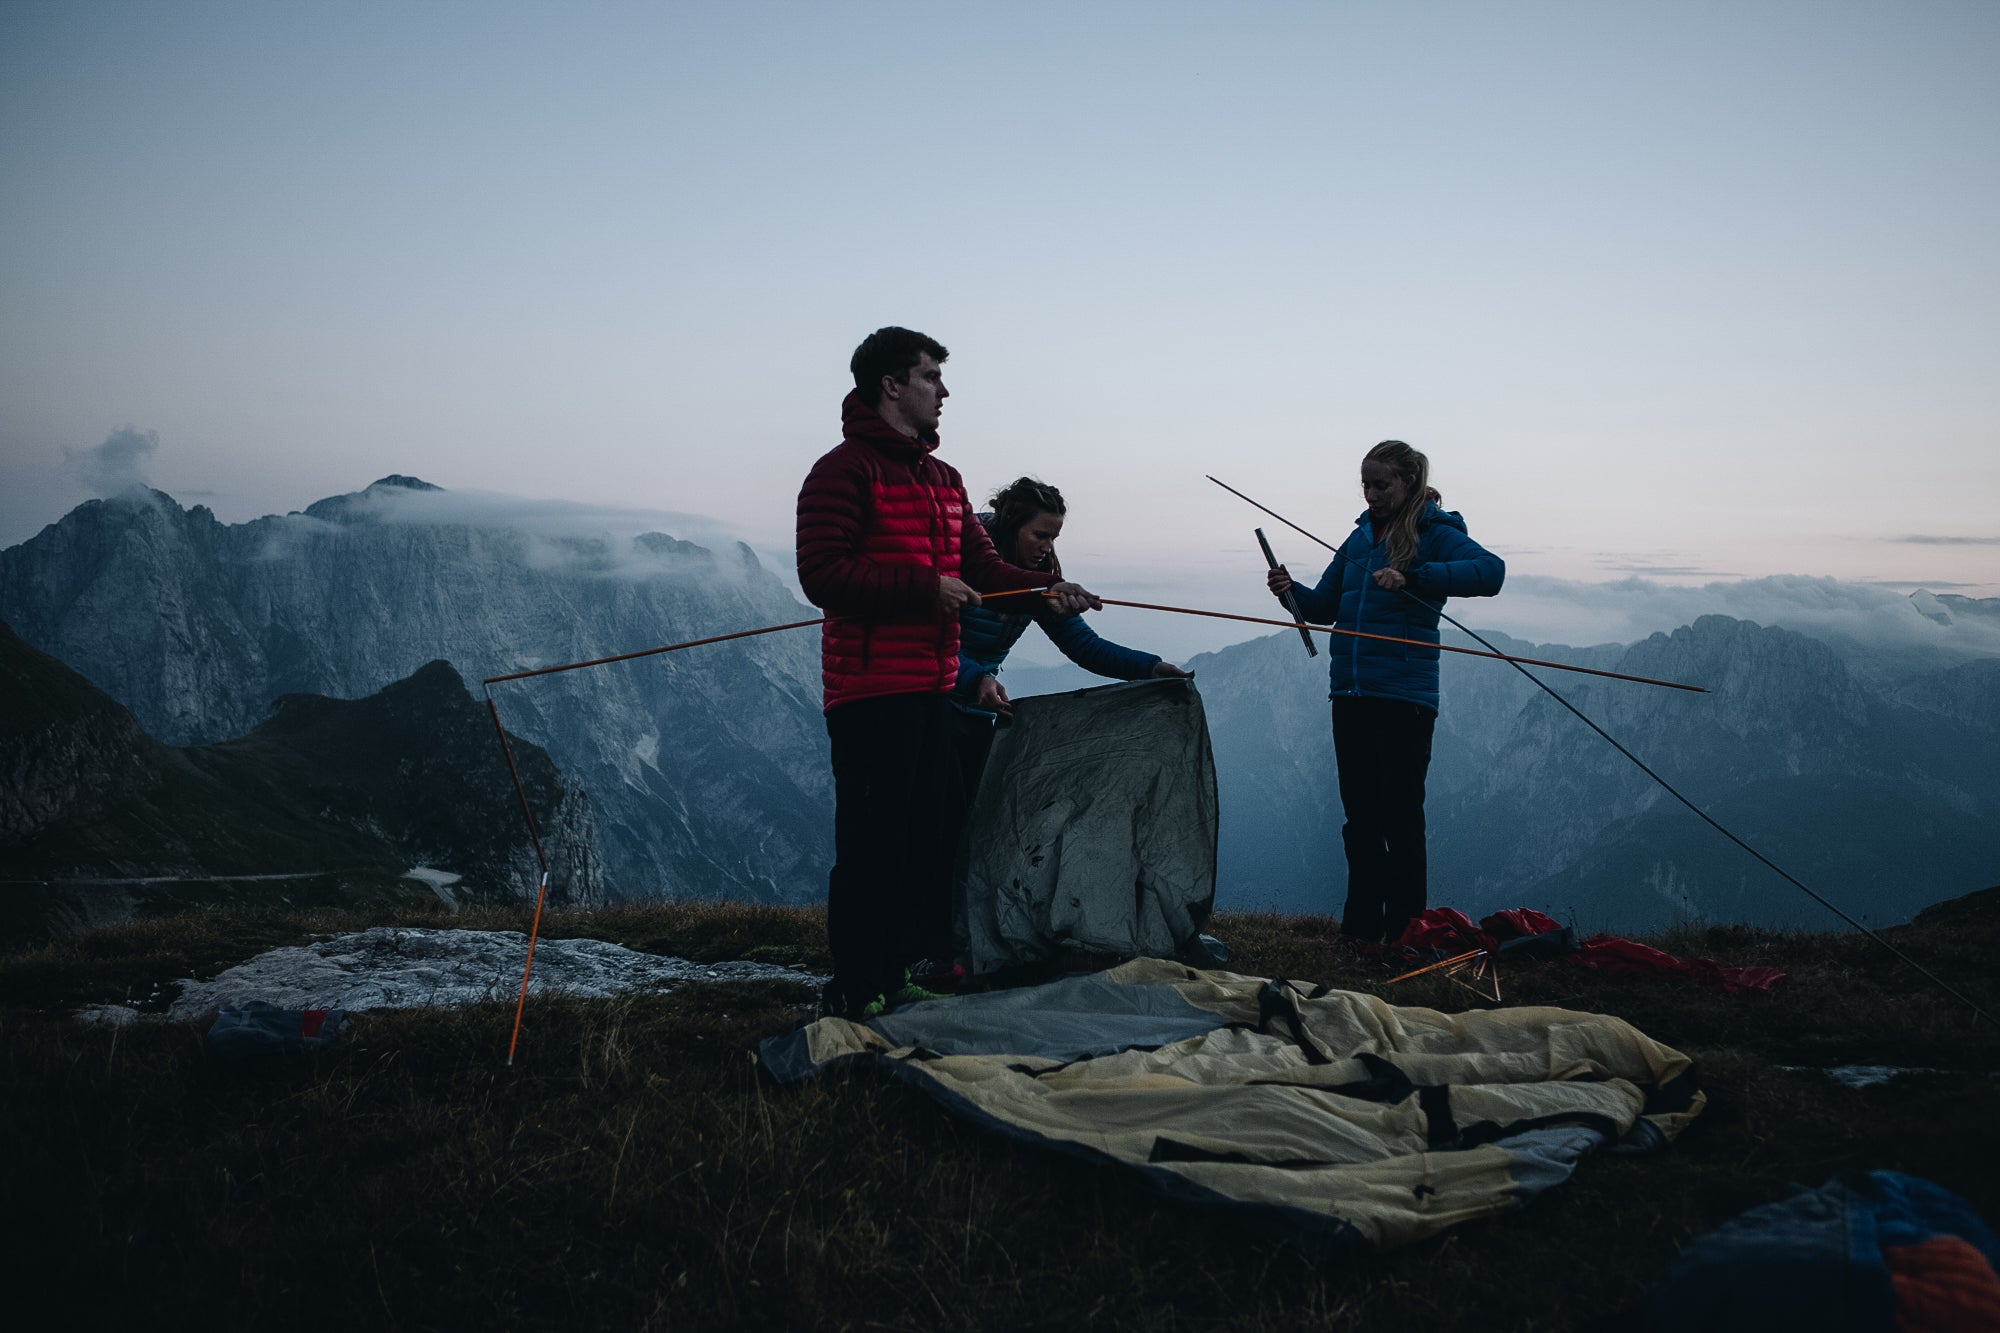 Three people putting the poles together for a 4 season mountain tent in the Slovenian mountains